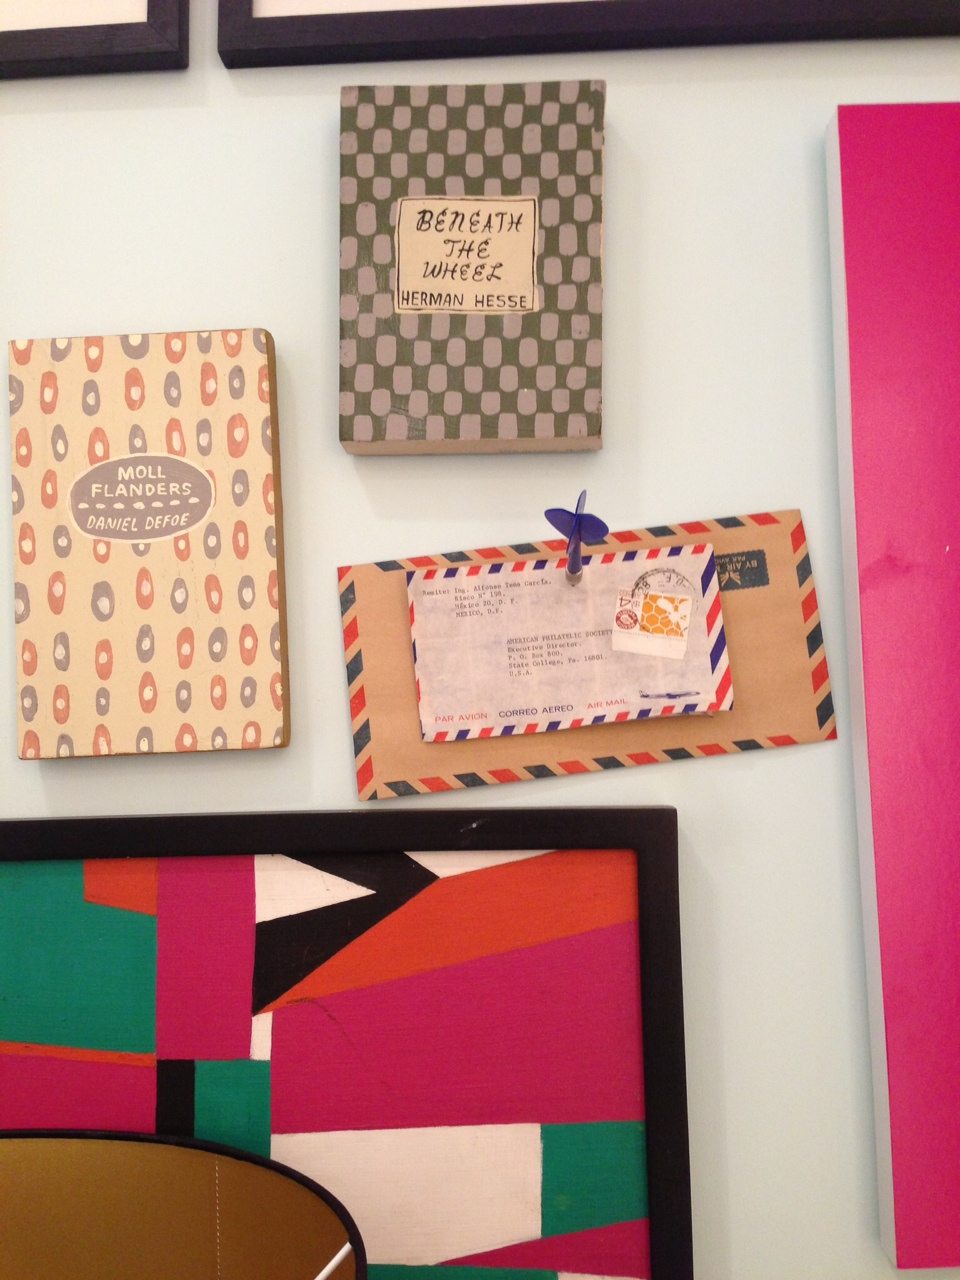 Kate Spade store photo dart gallery wall